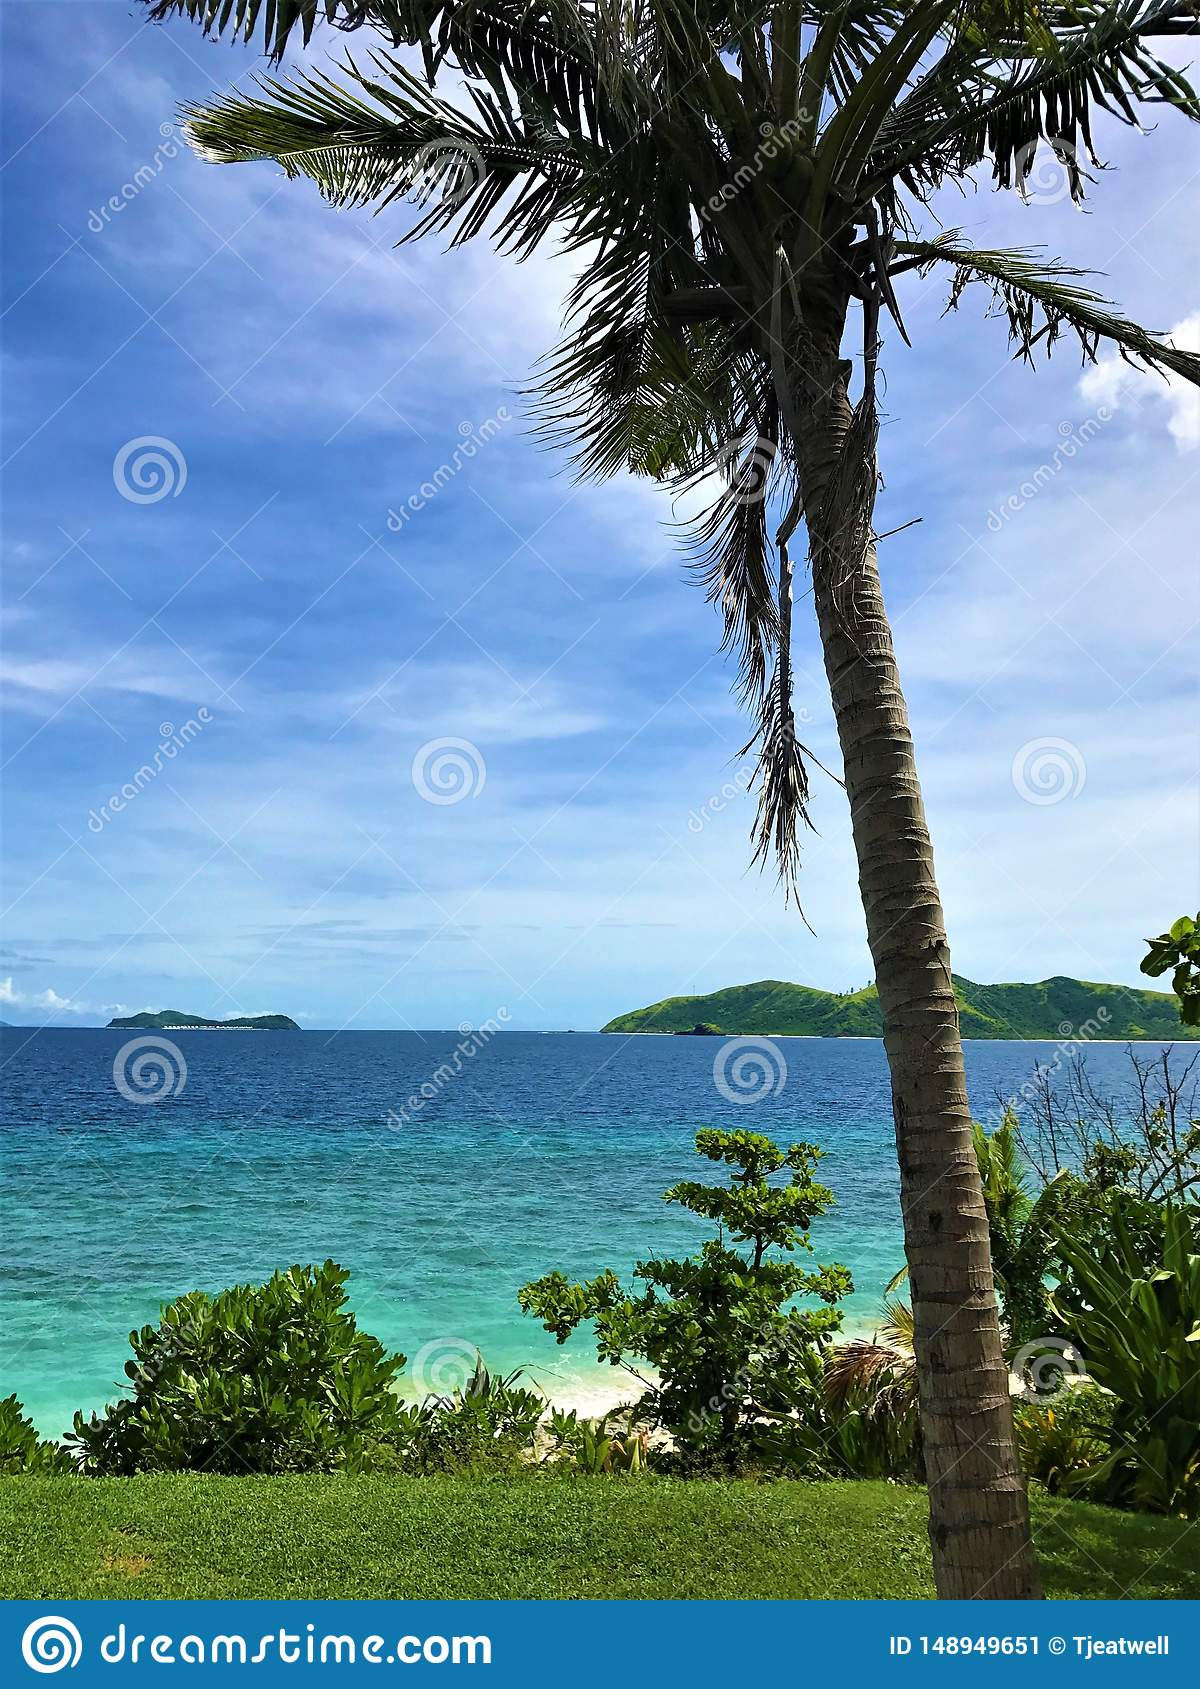 Travel Resort with palm tree and view looking out at the sea